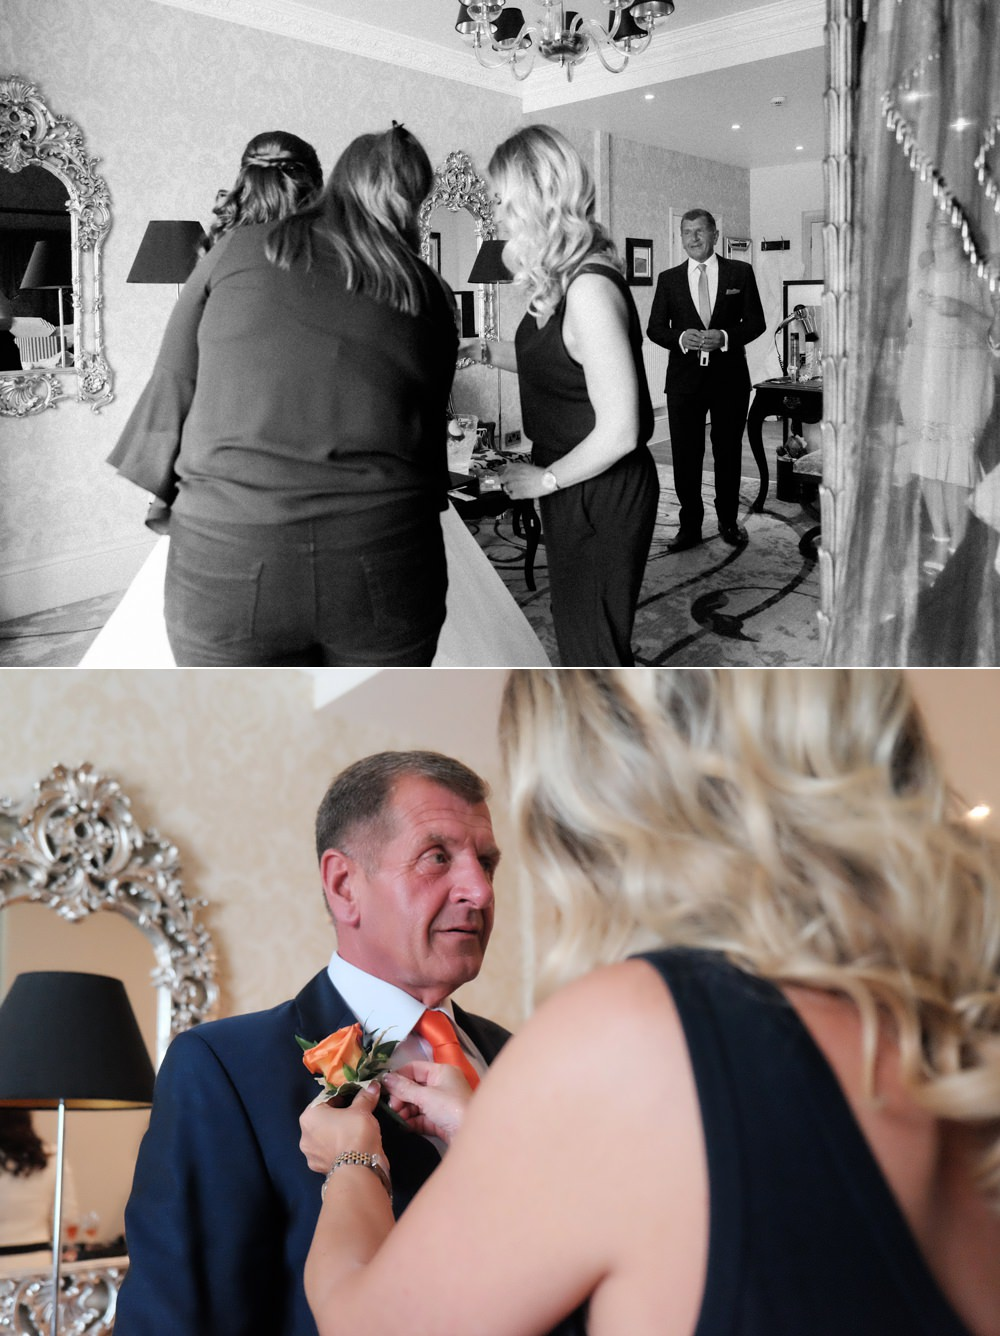 documentary-wedding-photography-essex_0104.jpg